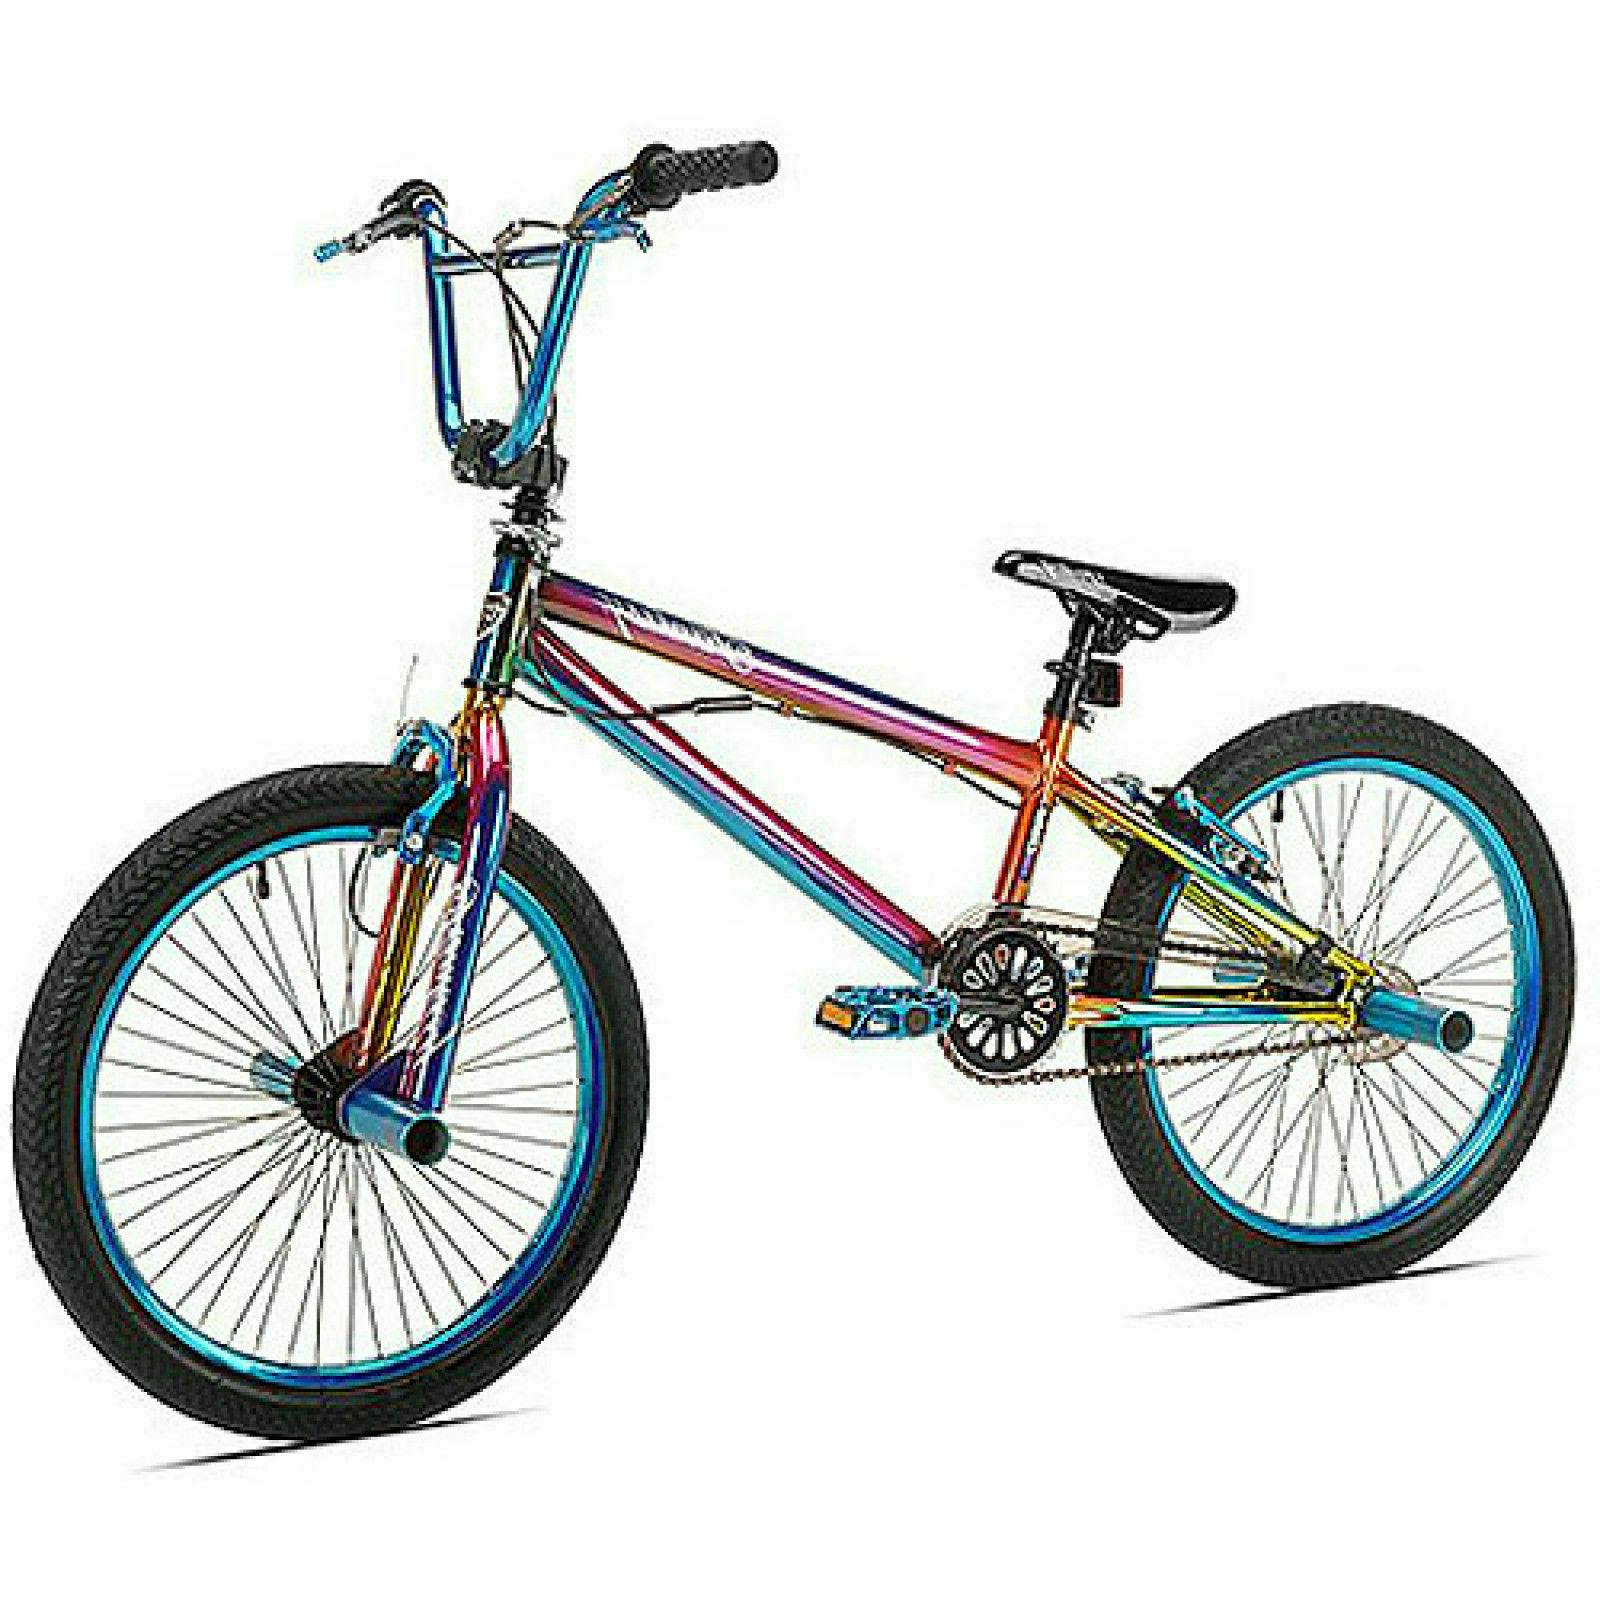 20 in. Kent Fantasy BMX Pro Bike Freestyle Bicycle Steel Fra